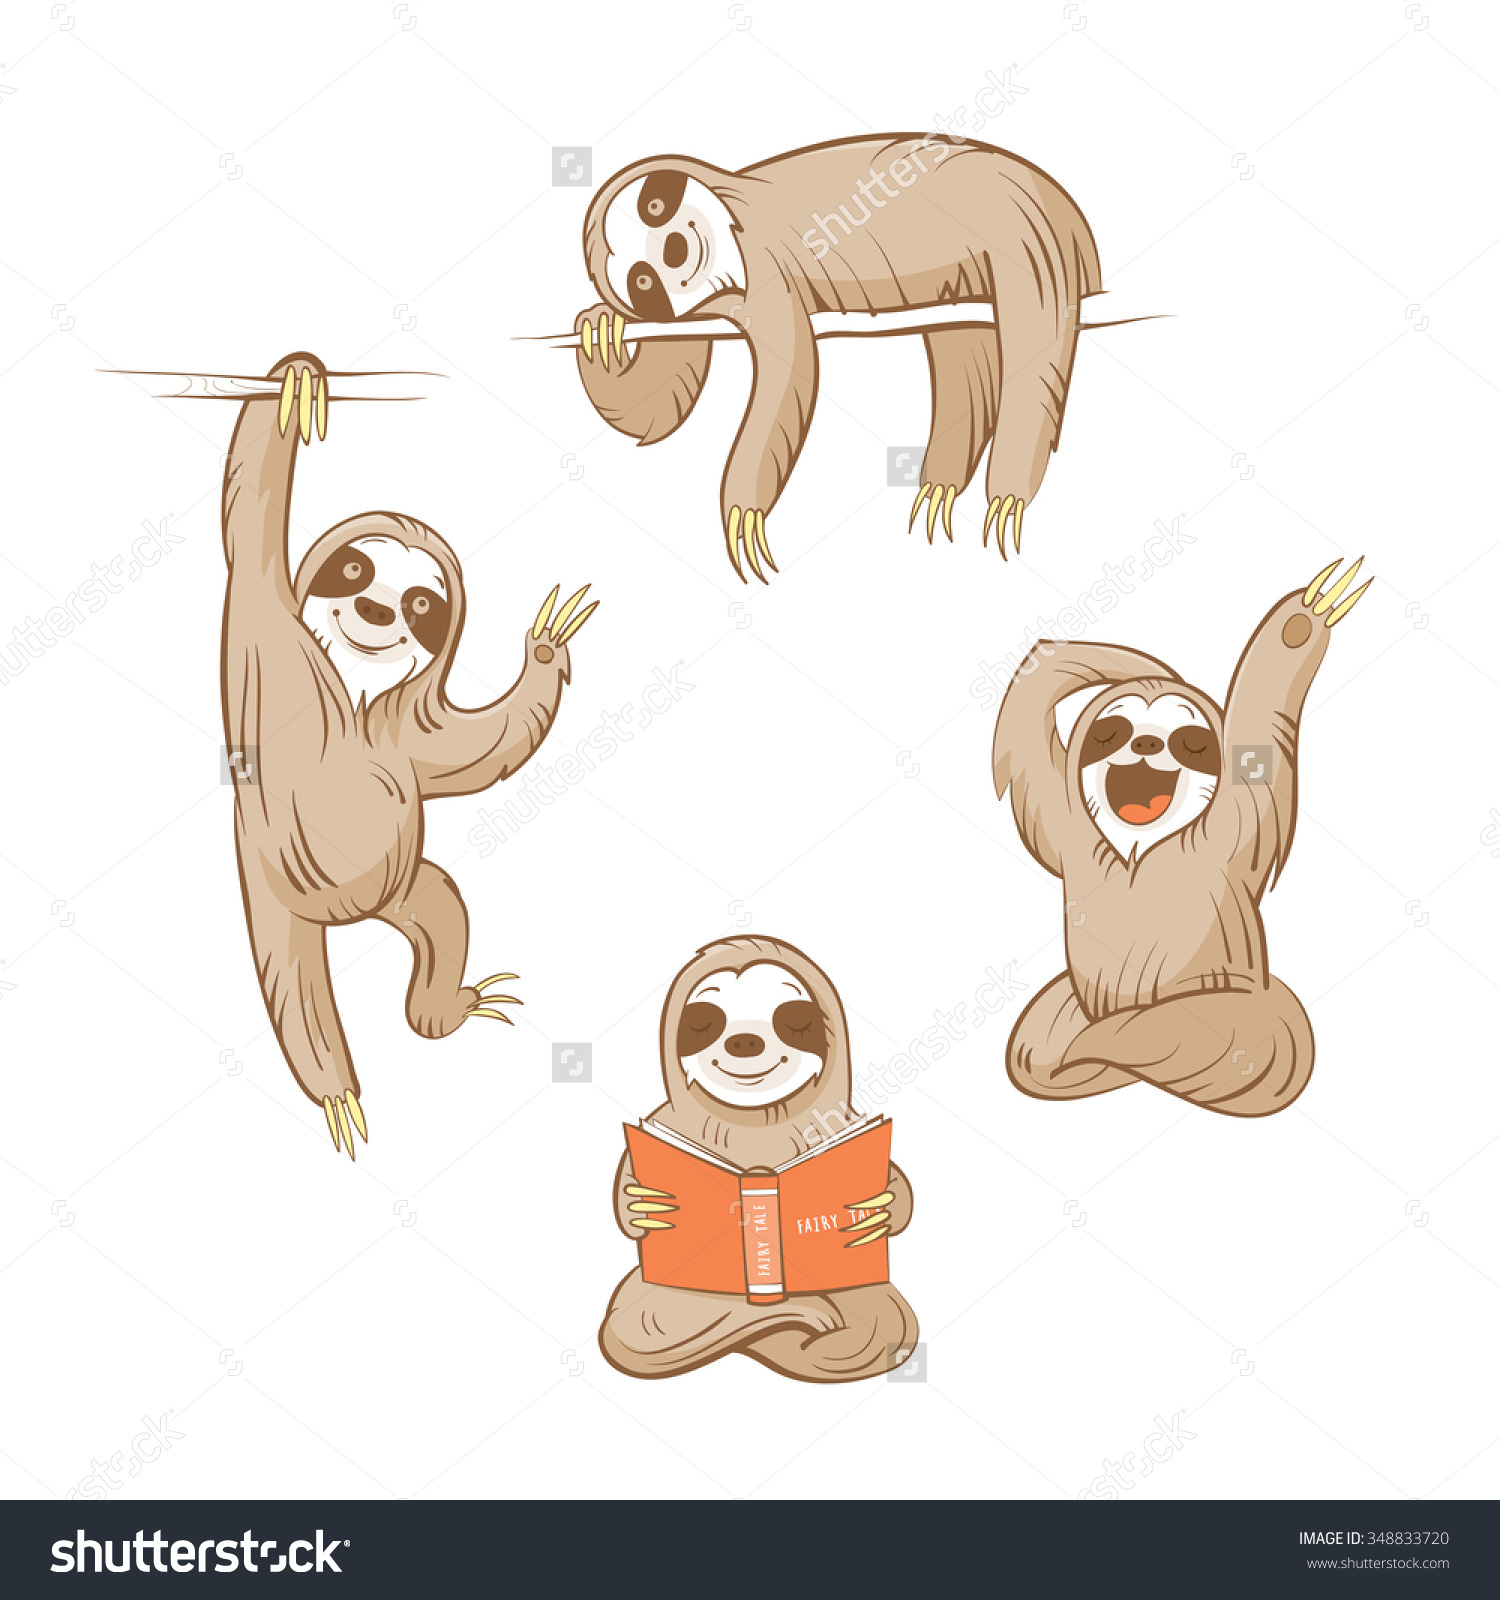 1500x1600 Cute Baby Sloth Illustration